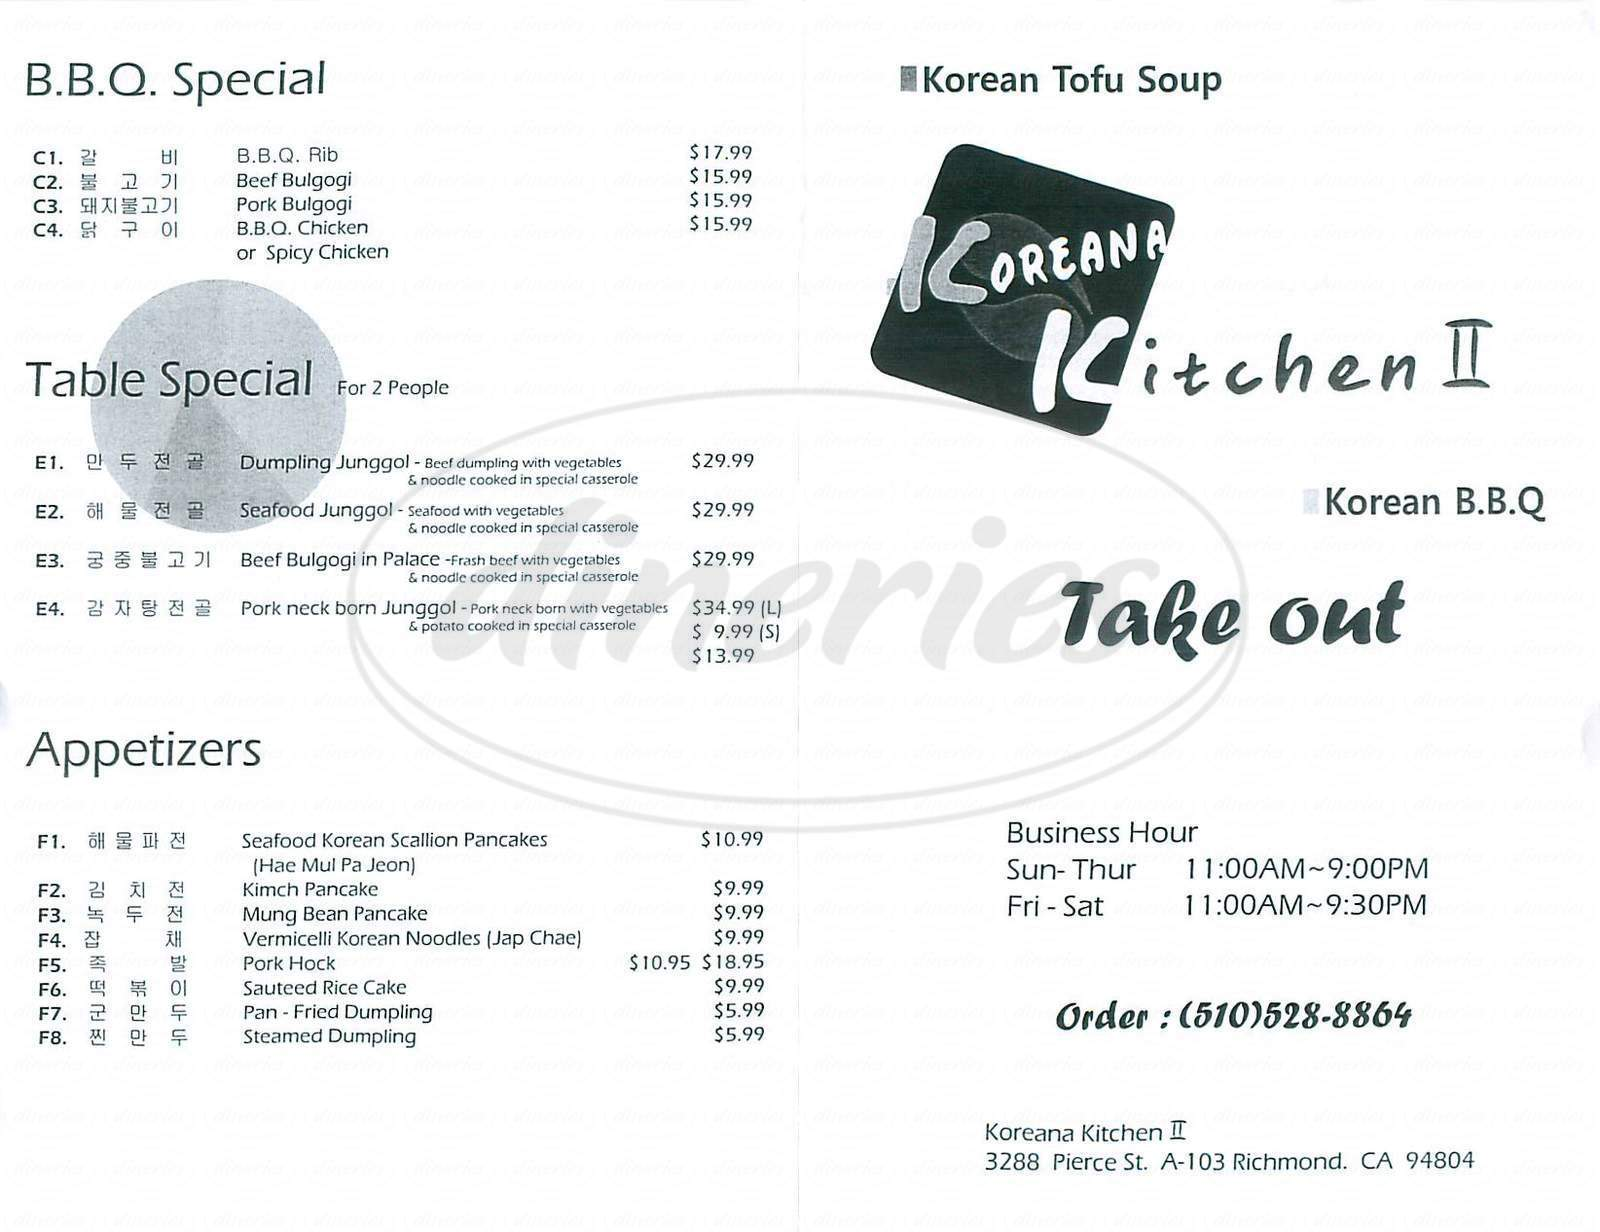 menu for Koreana Kitchen II